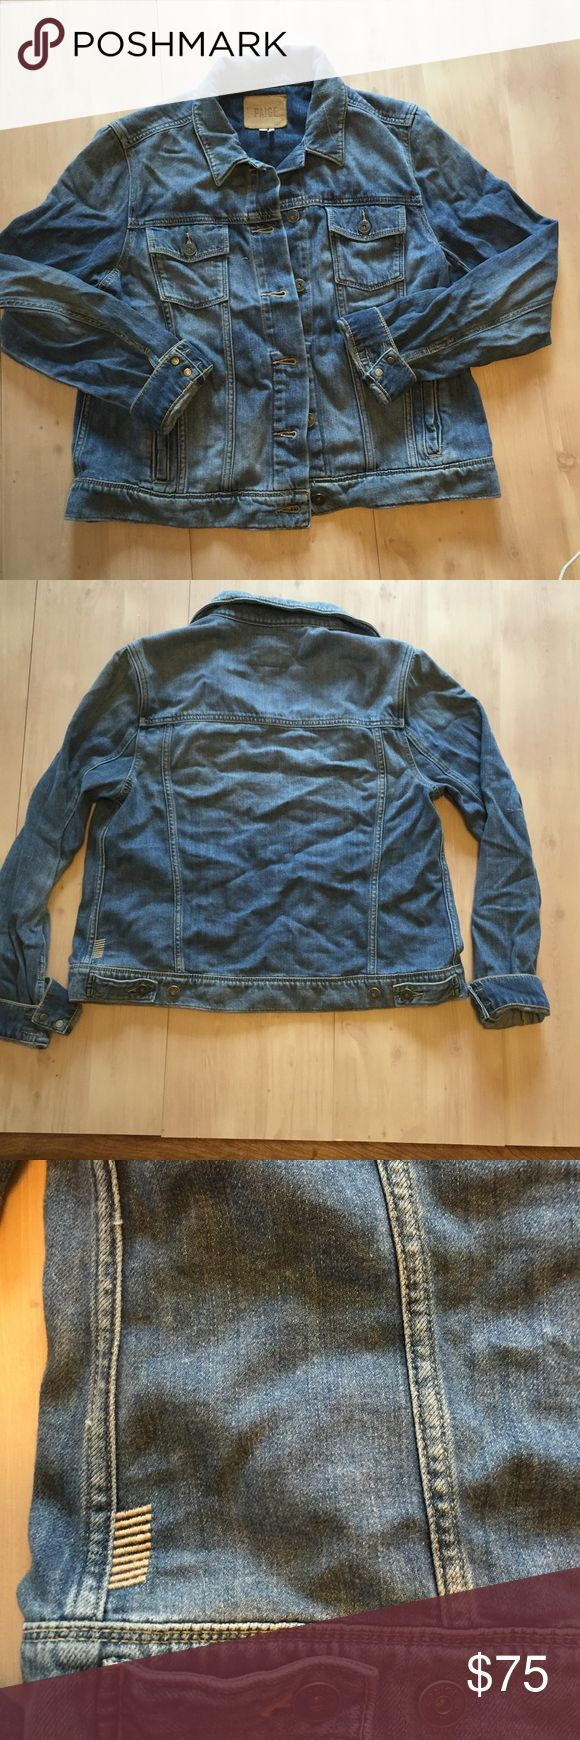 Paige jean jacket Sz L Paige denim jacket Sz L amazingly soft and stretchy feels like you are wearing a shirt but the weight and warmth of a jean jacket! No restricted arm movement that you get from jean jackets. Will iron😊 Paige Jeans Jackets & Coats Jean Jackets